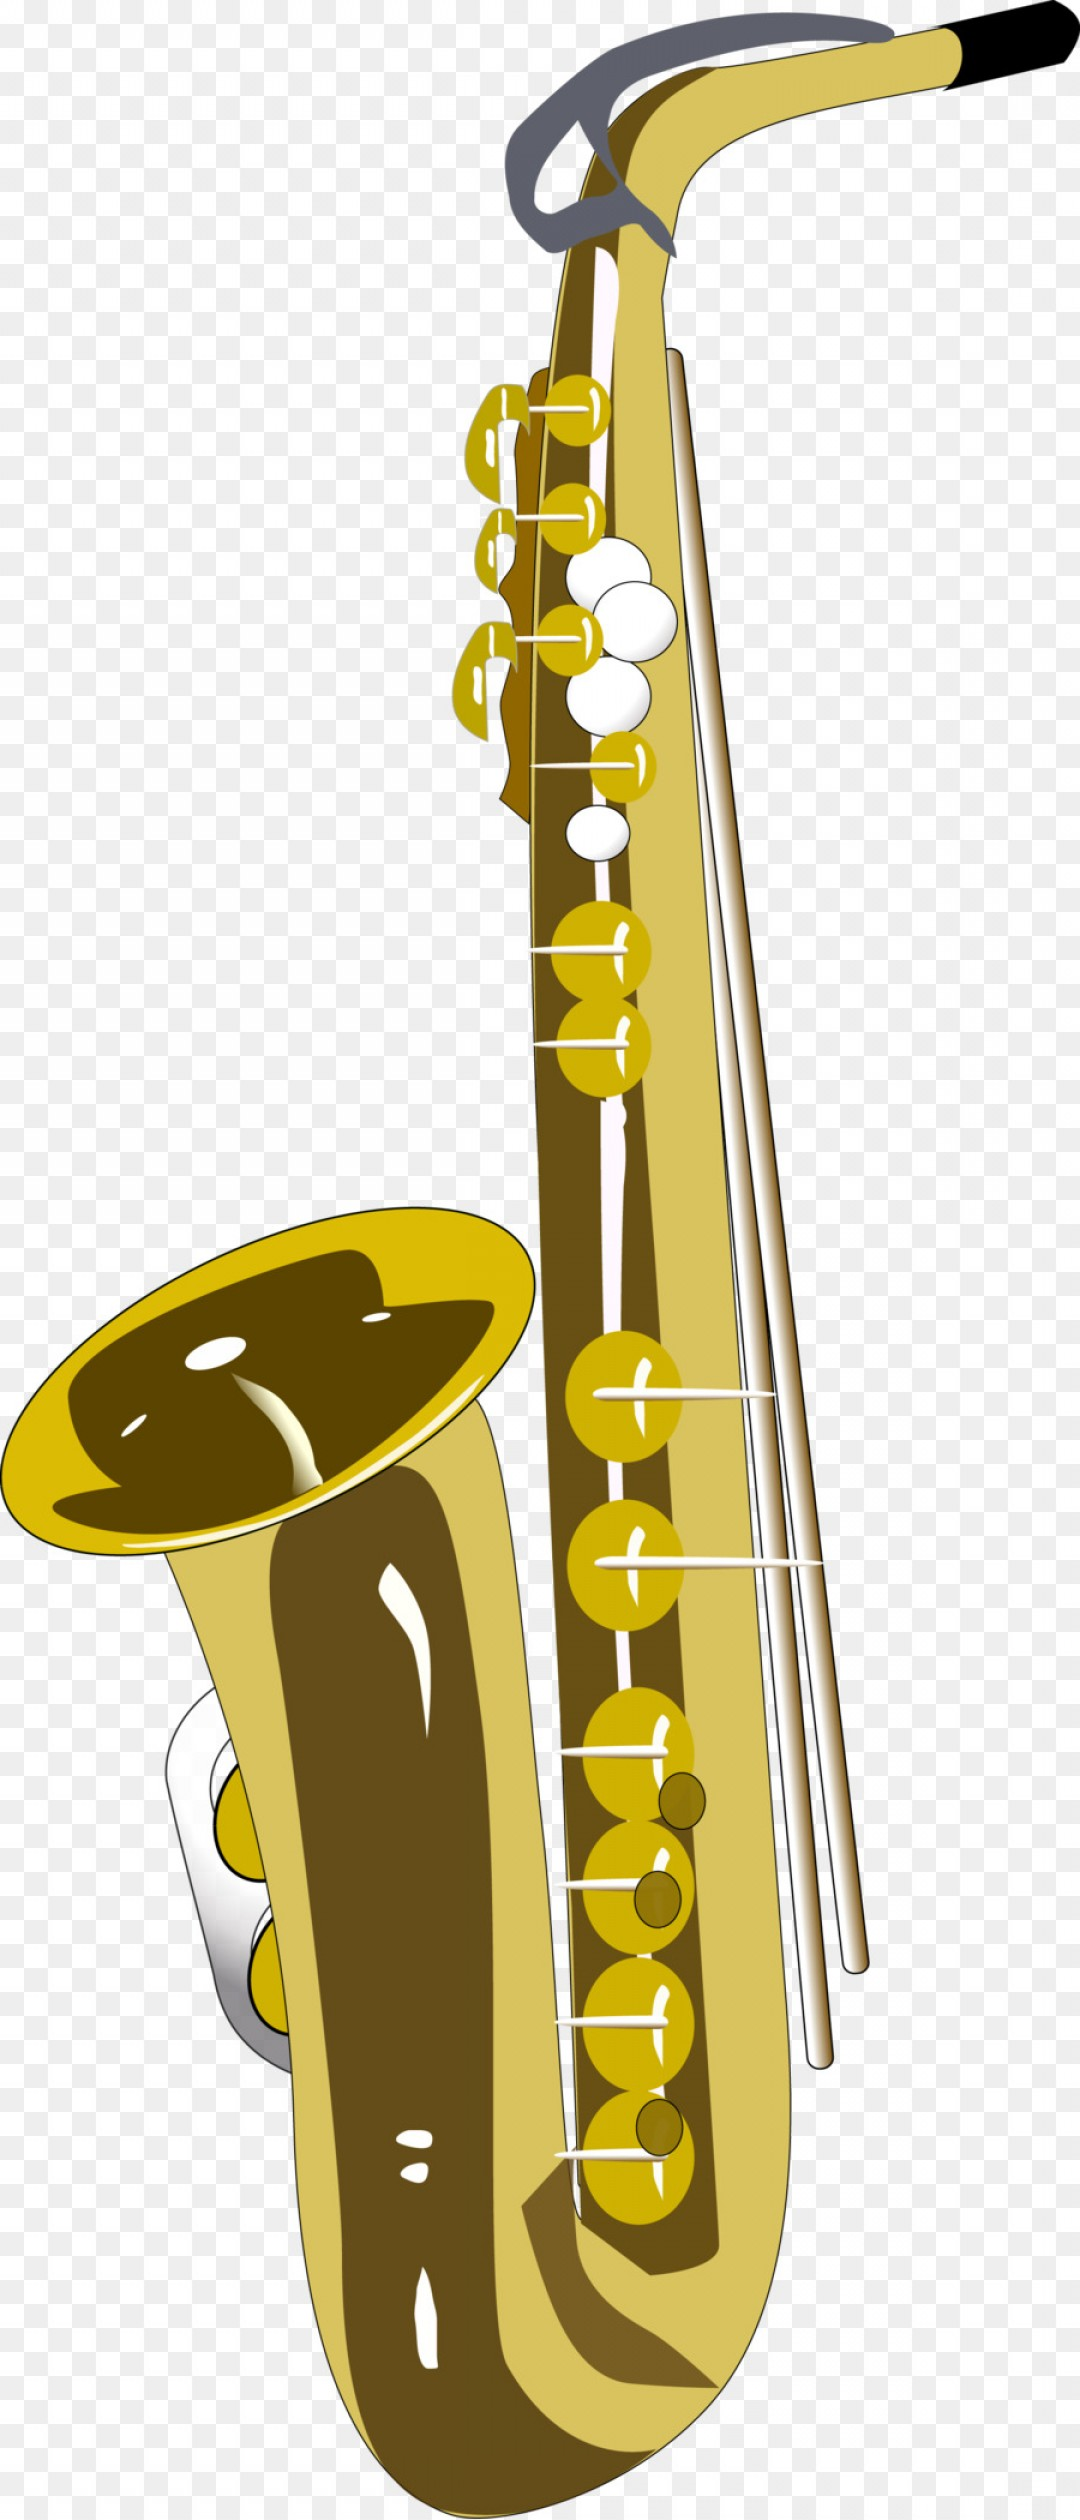 Alto Saxophone Vector Graphics: Png Alto Saxophone Cartoon Clip Art Vector Speaker